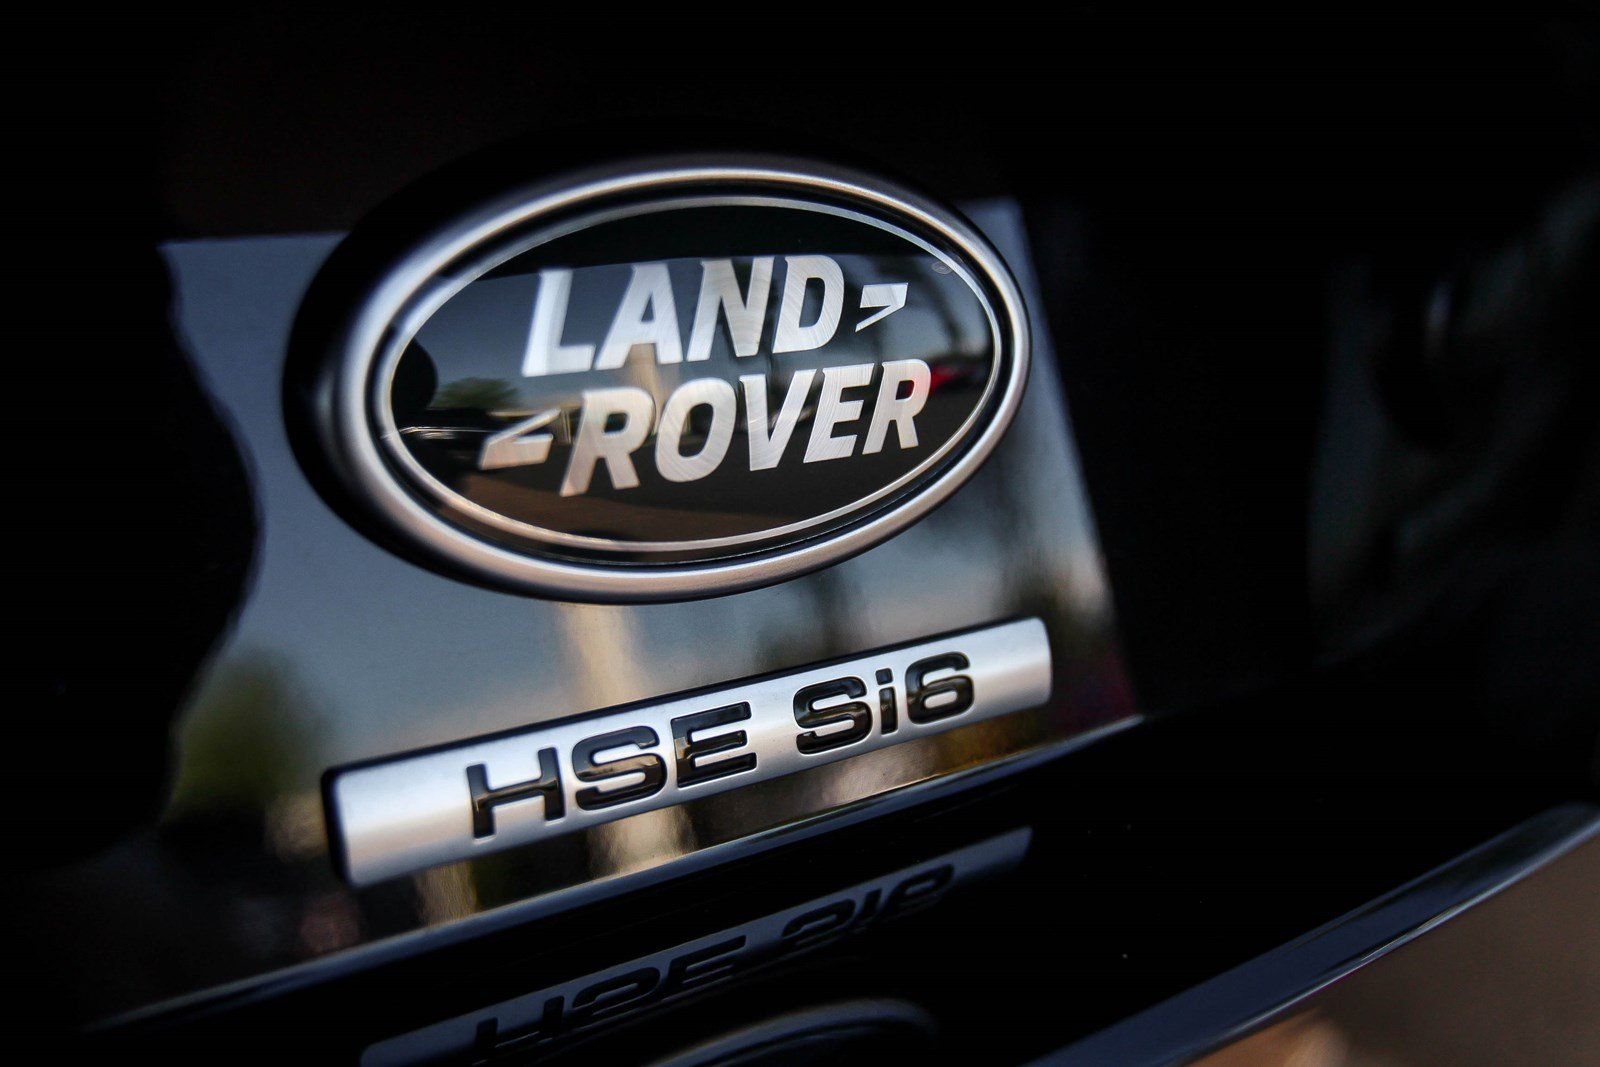 Land rover discovery hse si6 màu đen